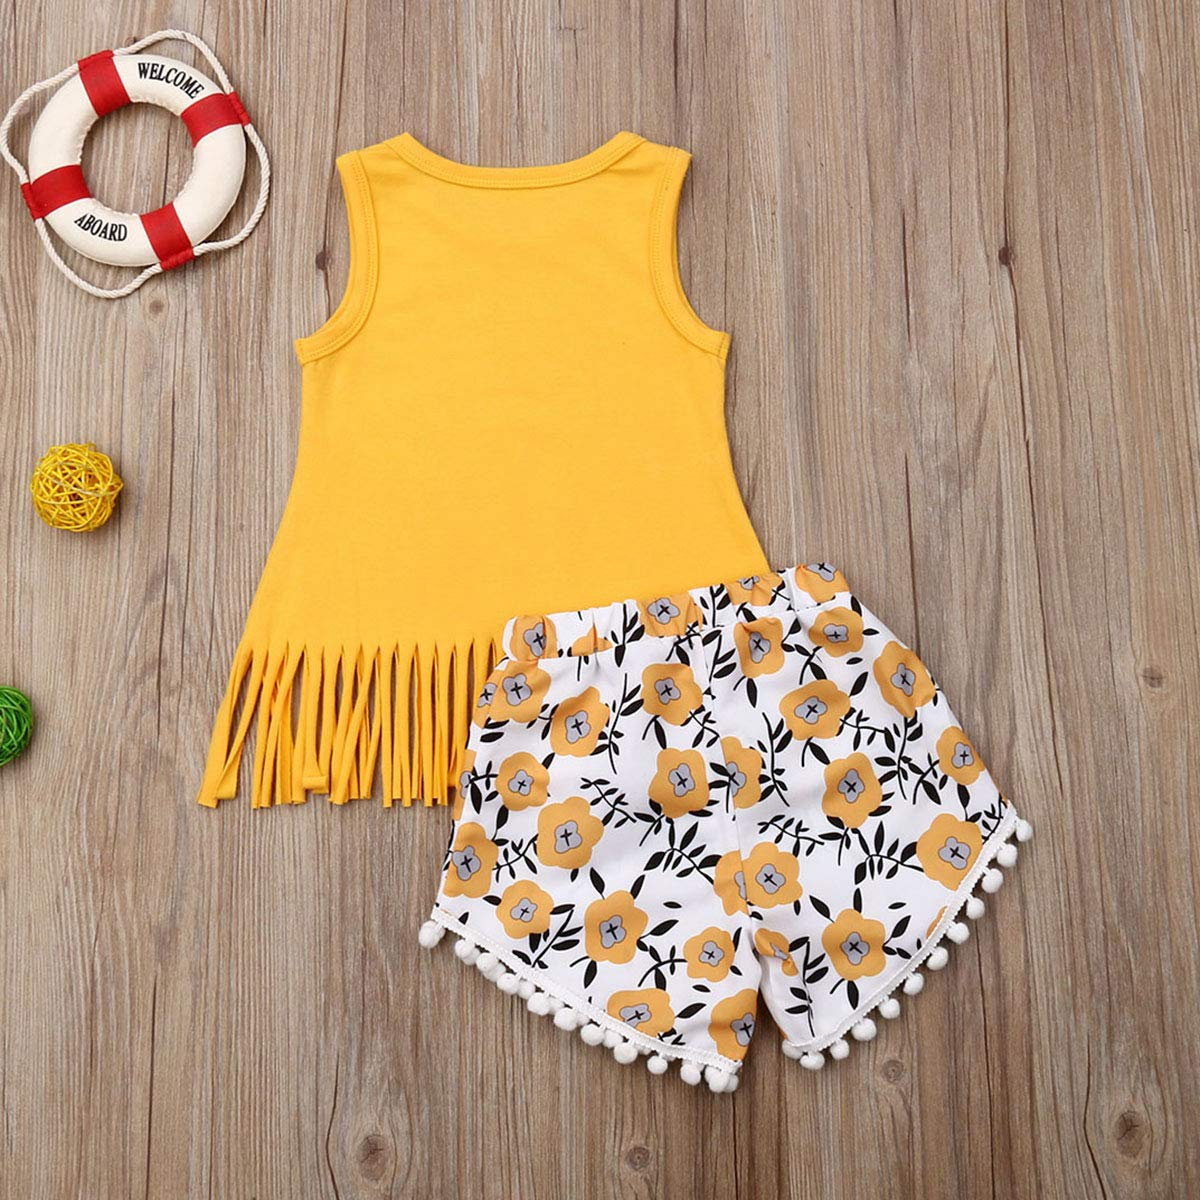 Lefyira Toddler Girl Sunflower Outfits Sleeveless T-Shirt Vest Tops+Floral Denim Shorts 2Pcs Baby Outfit Suit